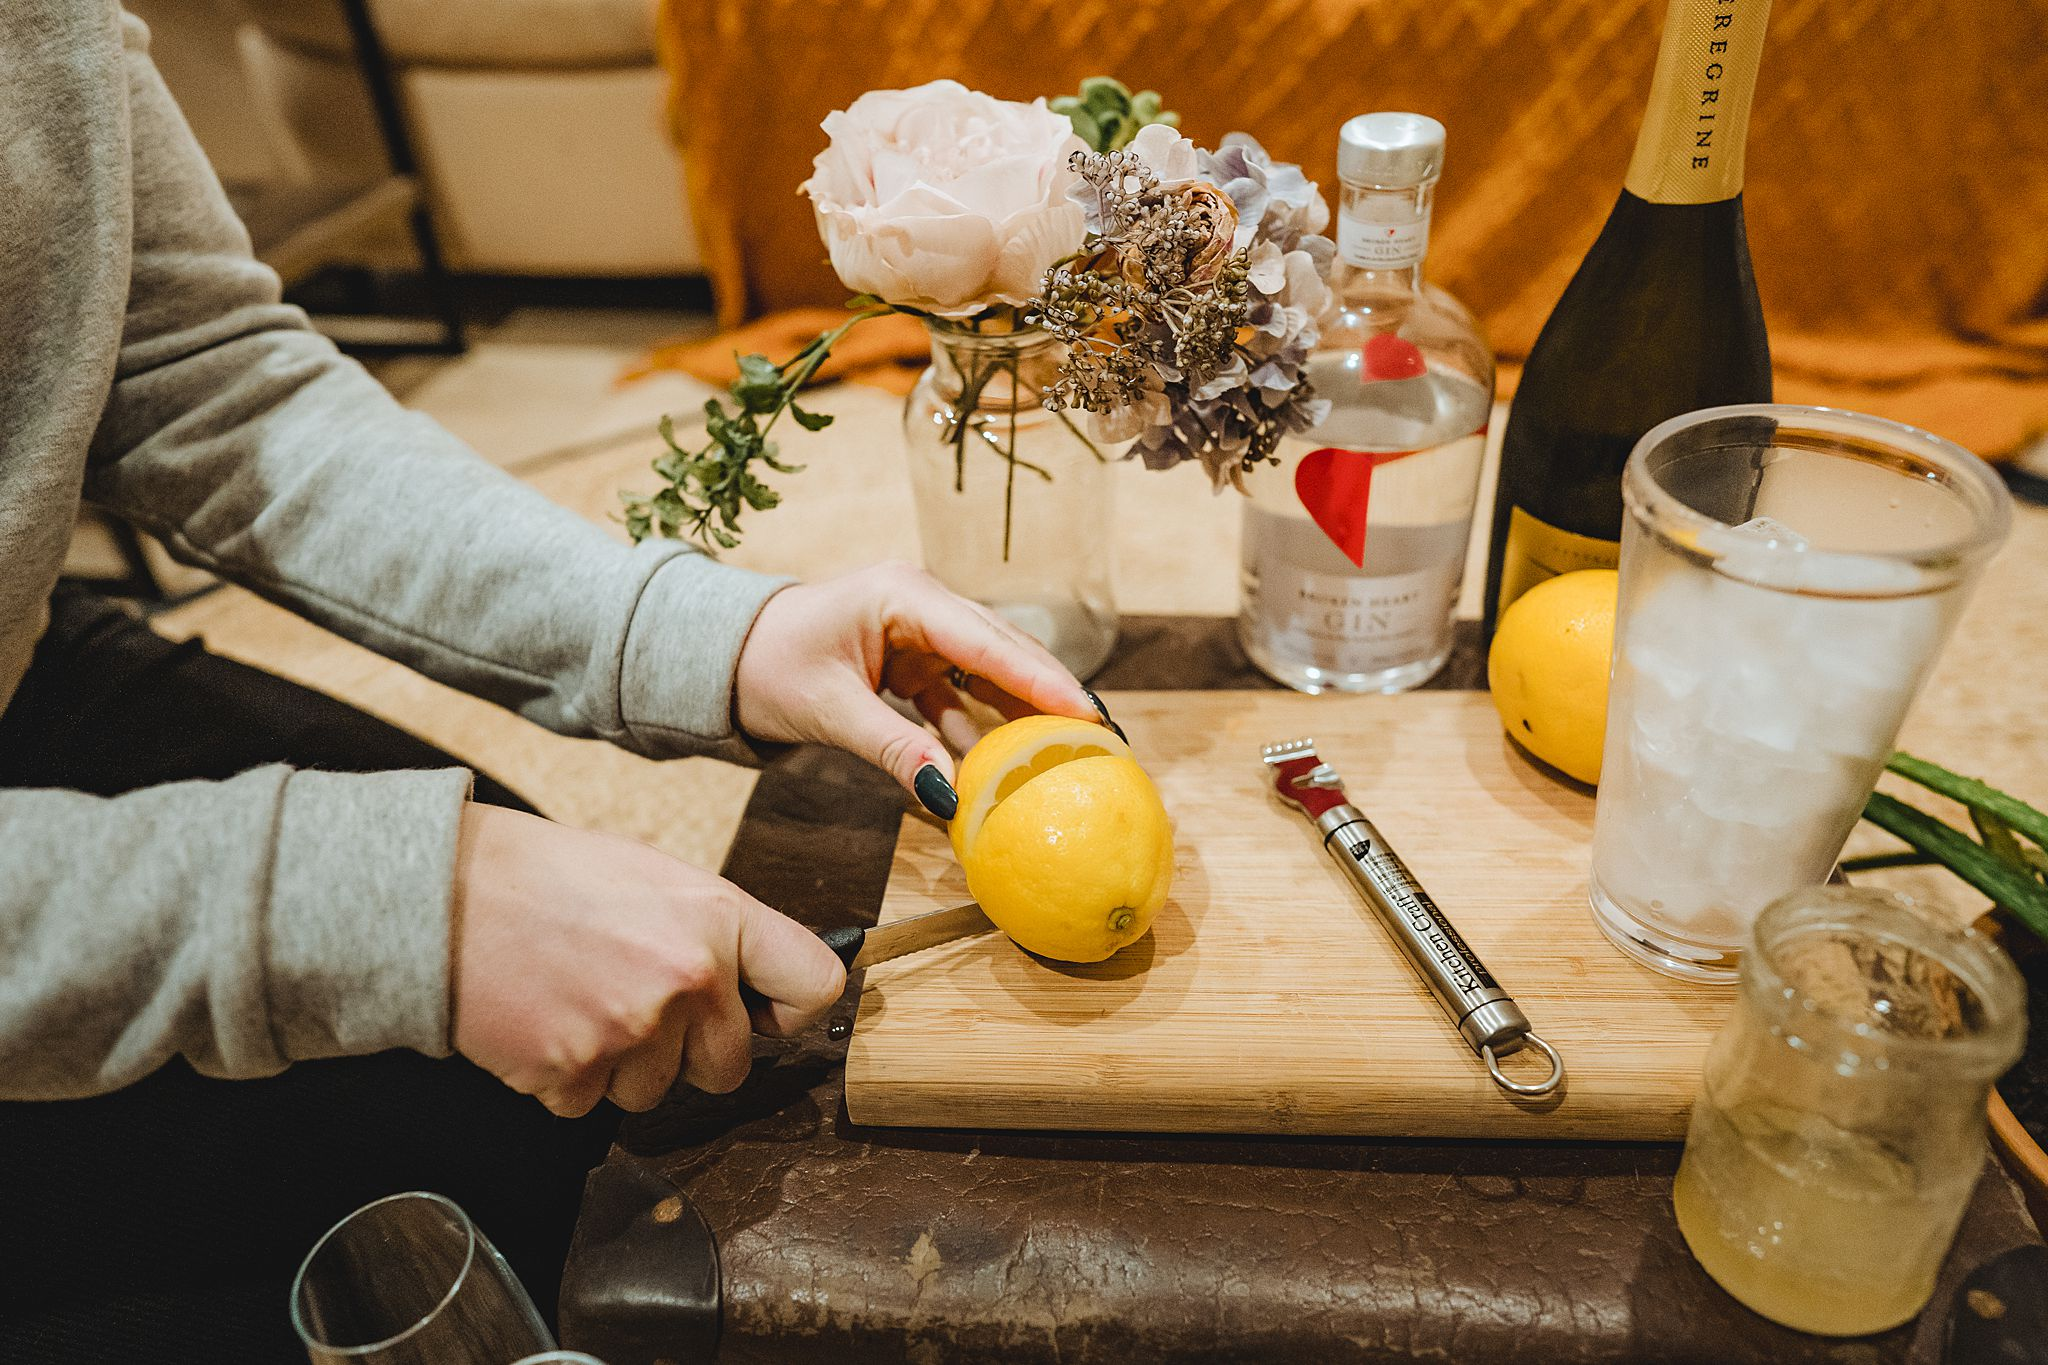 cutting a lemon to make cocktails